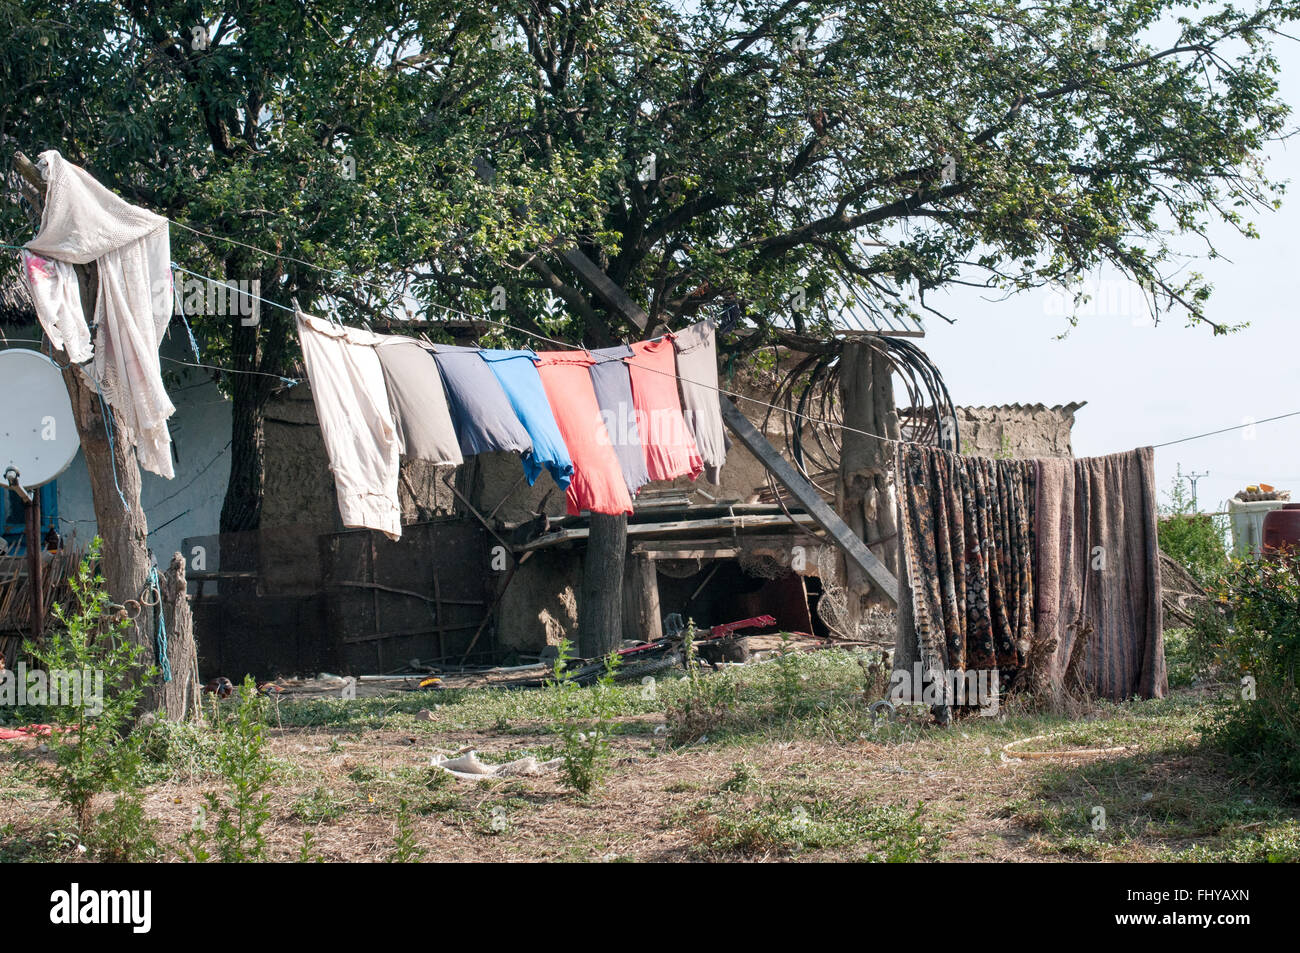 old wooden country houses with various dress at the sun - Stock Image